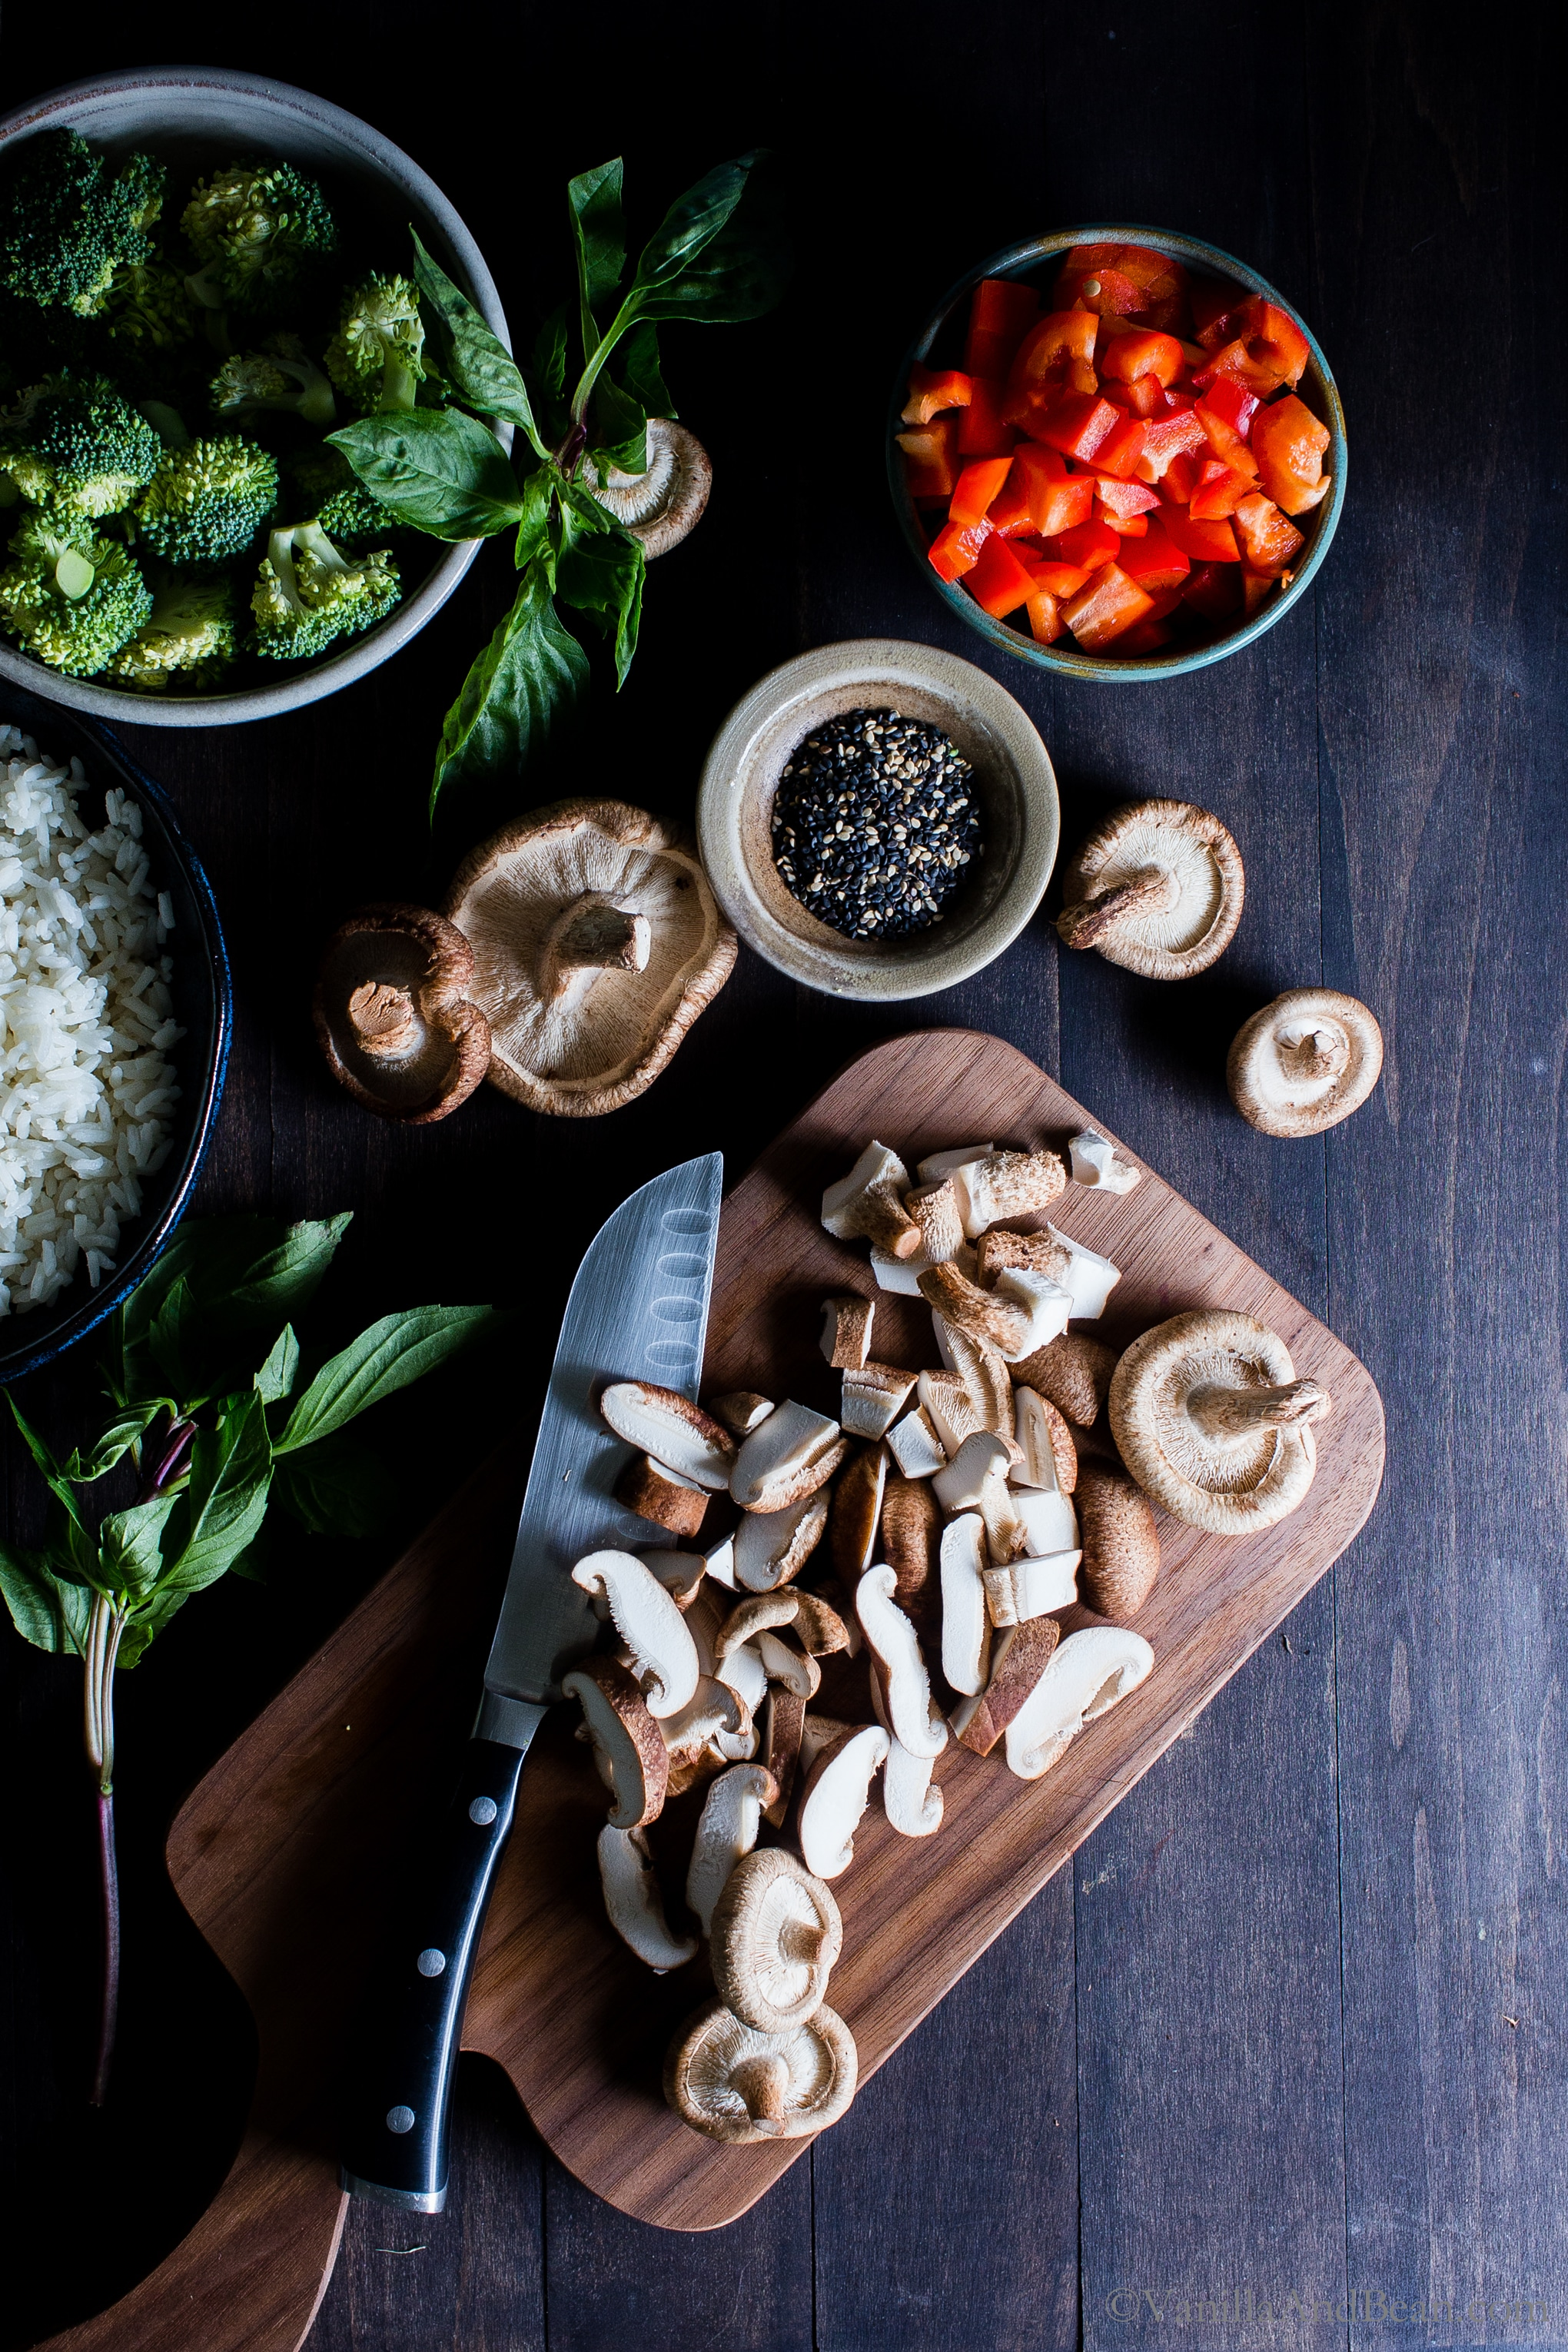 Ingredients for veggie fried rice with a focus on sliced mushrooms on a cutting board.